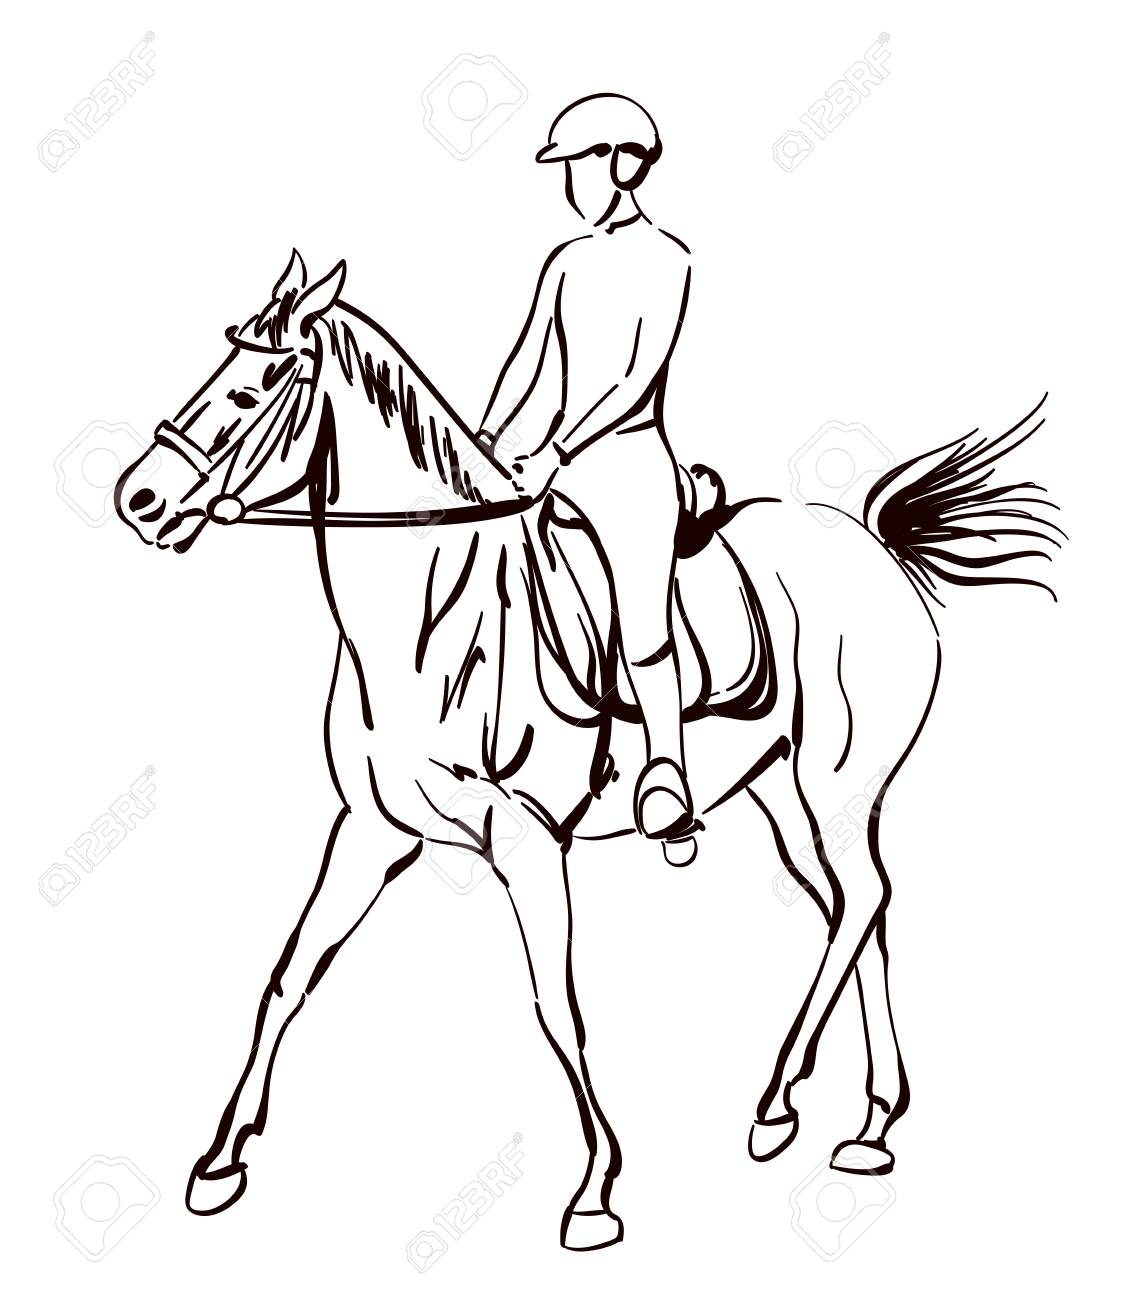 1133x1300 Riding Horse Vector Illustration. Sketchy Drawing On Equestrian